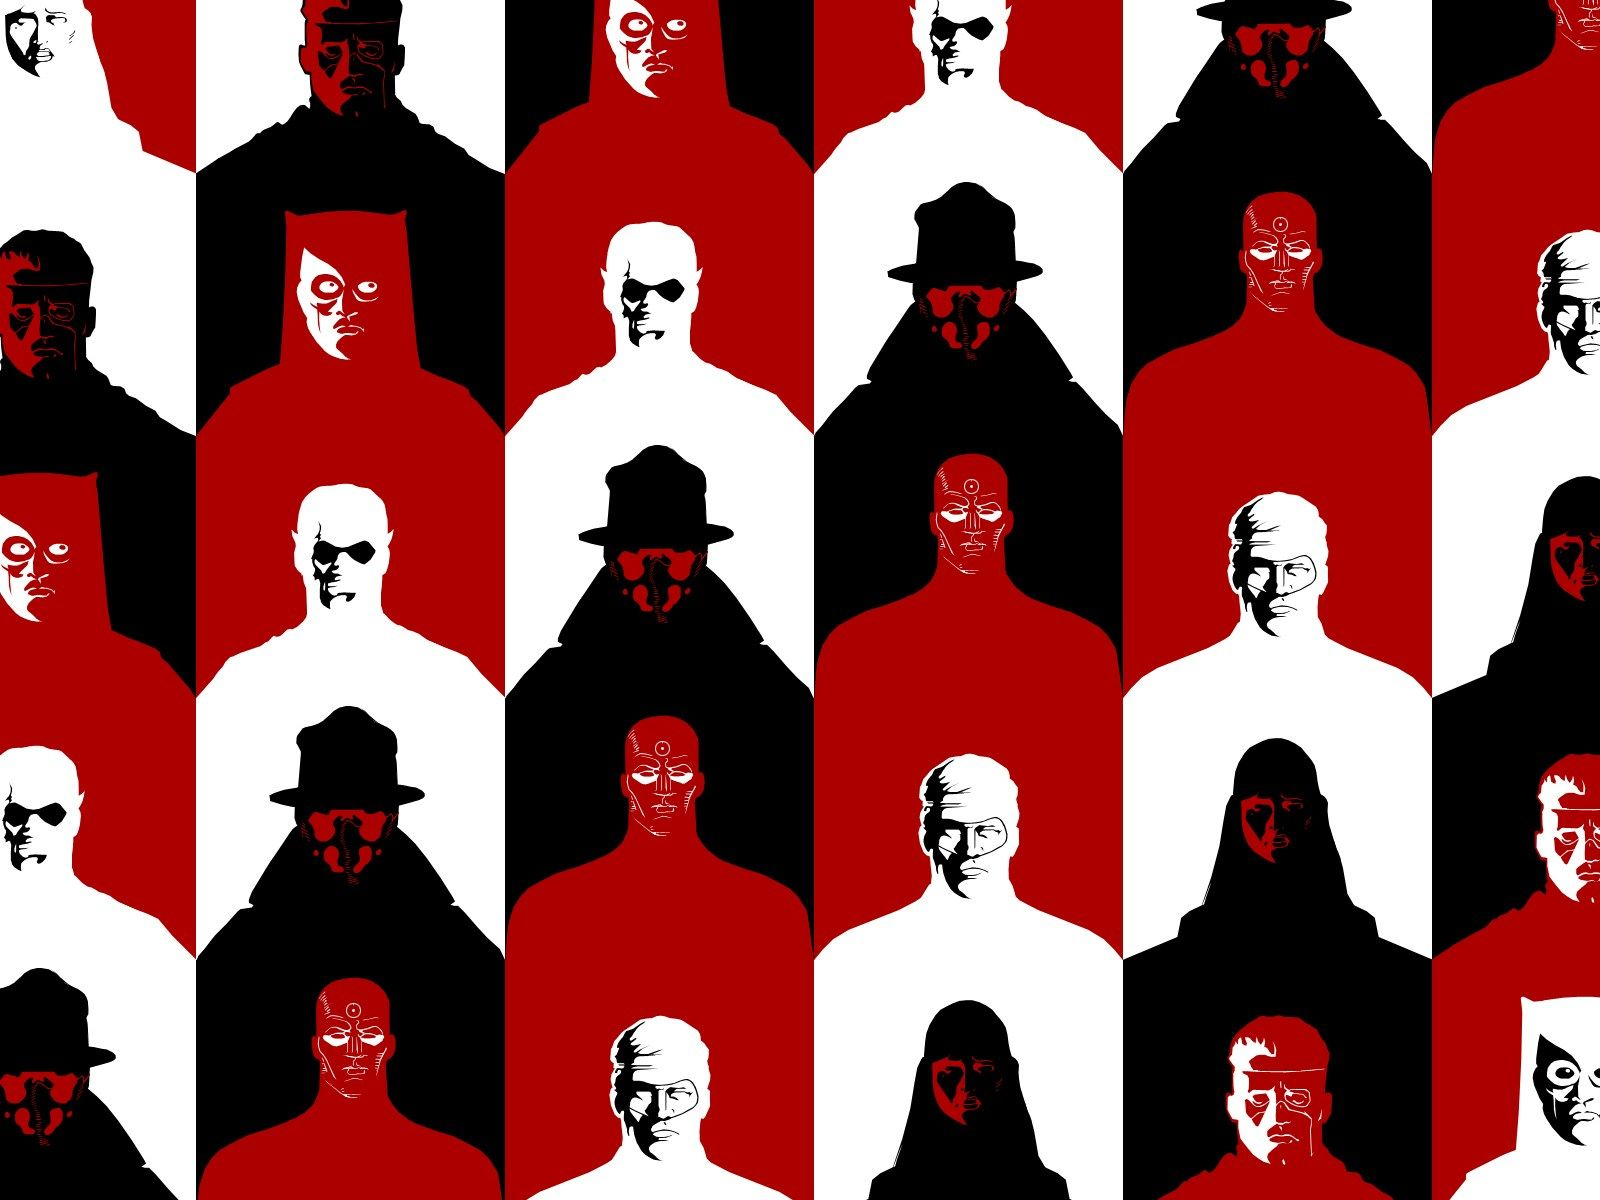 hd watchmen iphone background | watchmen | pinterest